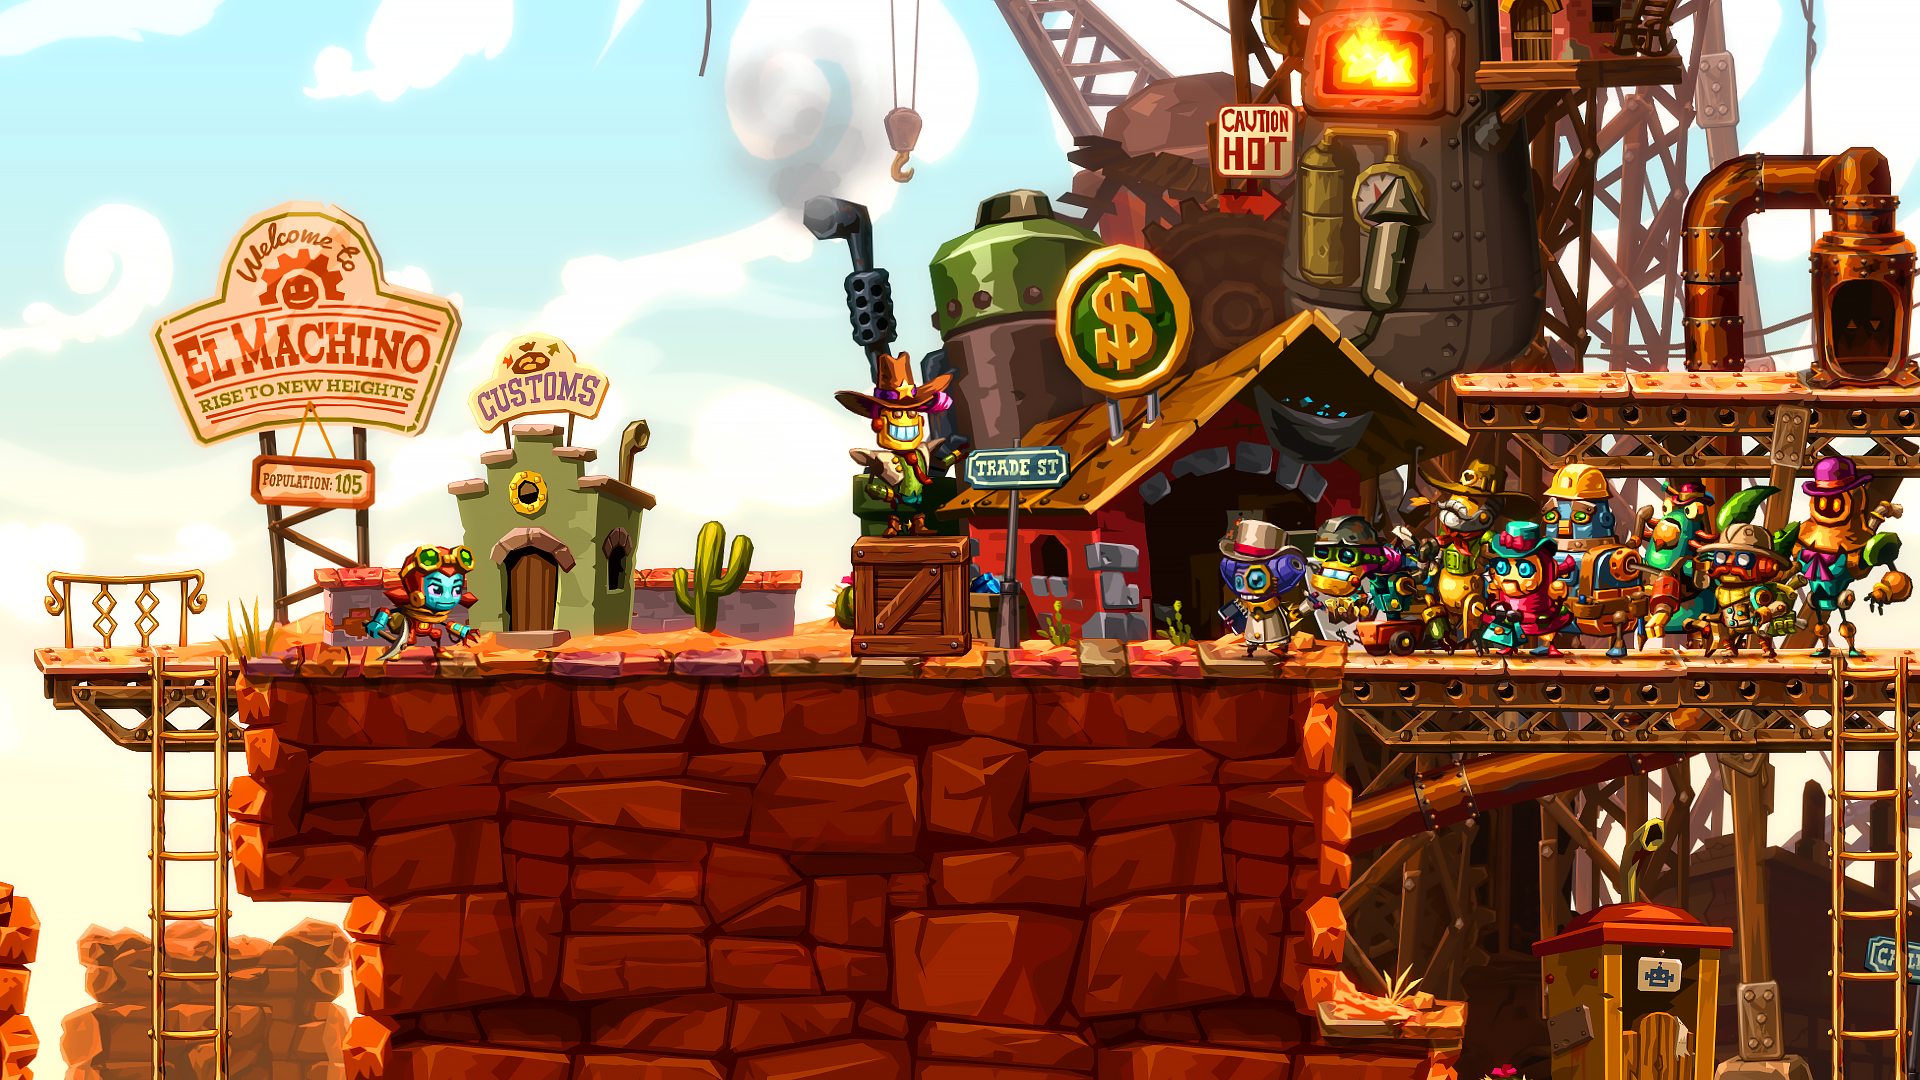 SteamWorld-Dig-2-Screenshot-11.png